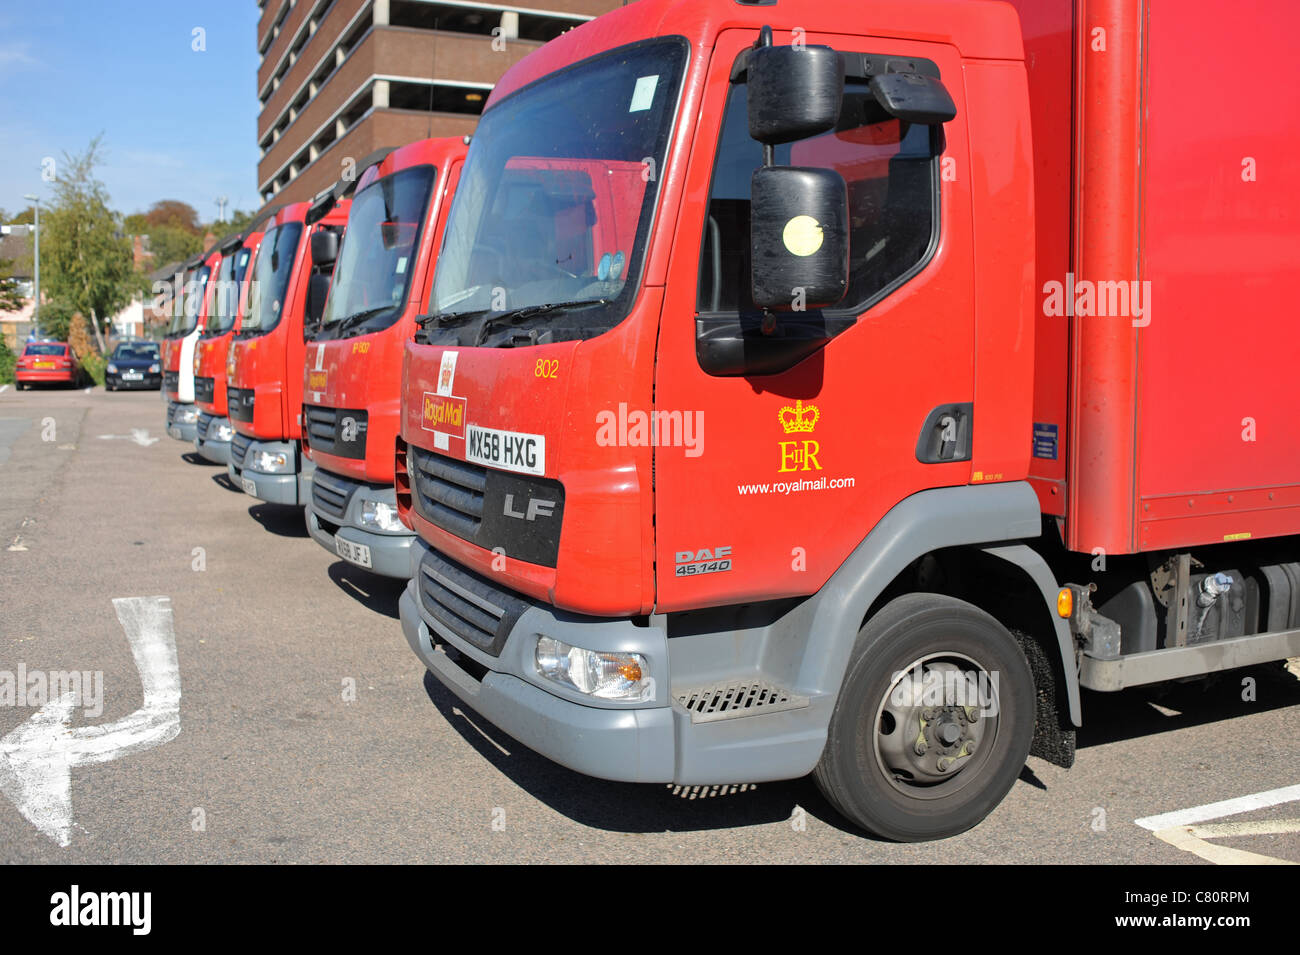 royal mail vehicle stock photos royal mail vehicle stock images alamy. Black Bedroom Furniture Sets. Home Design Ideas